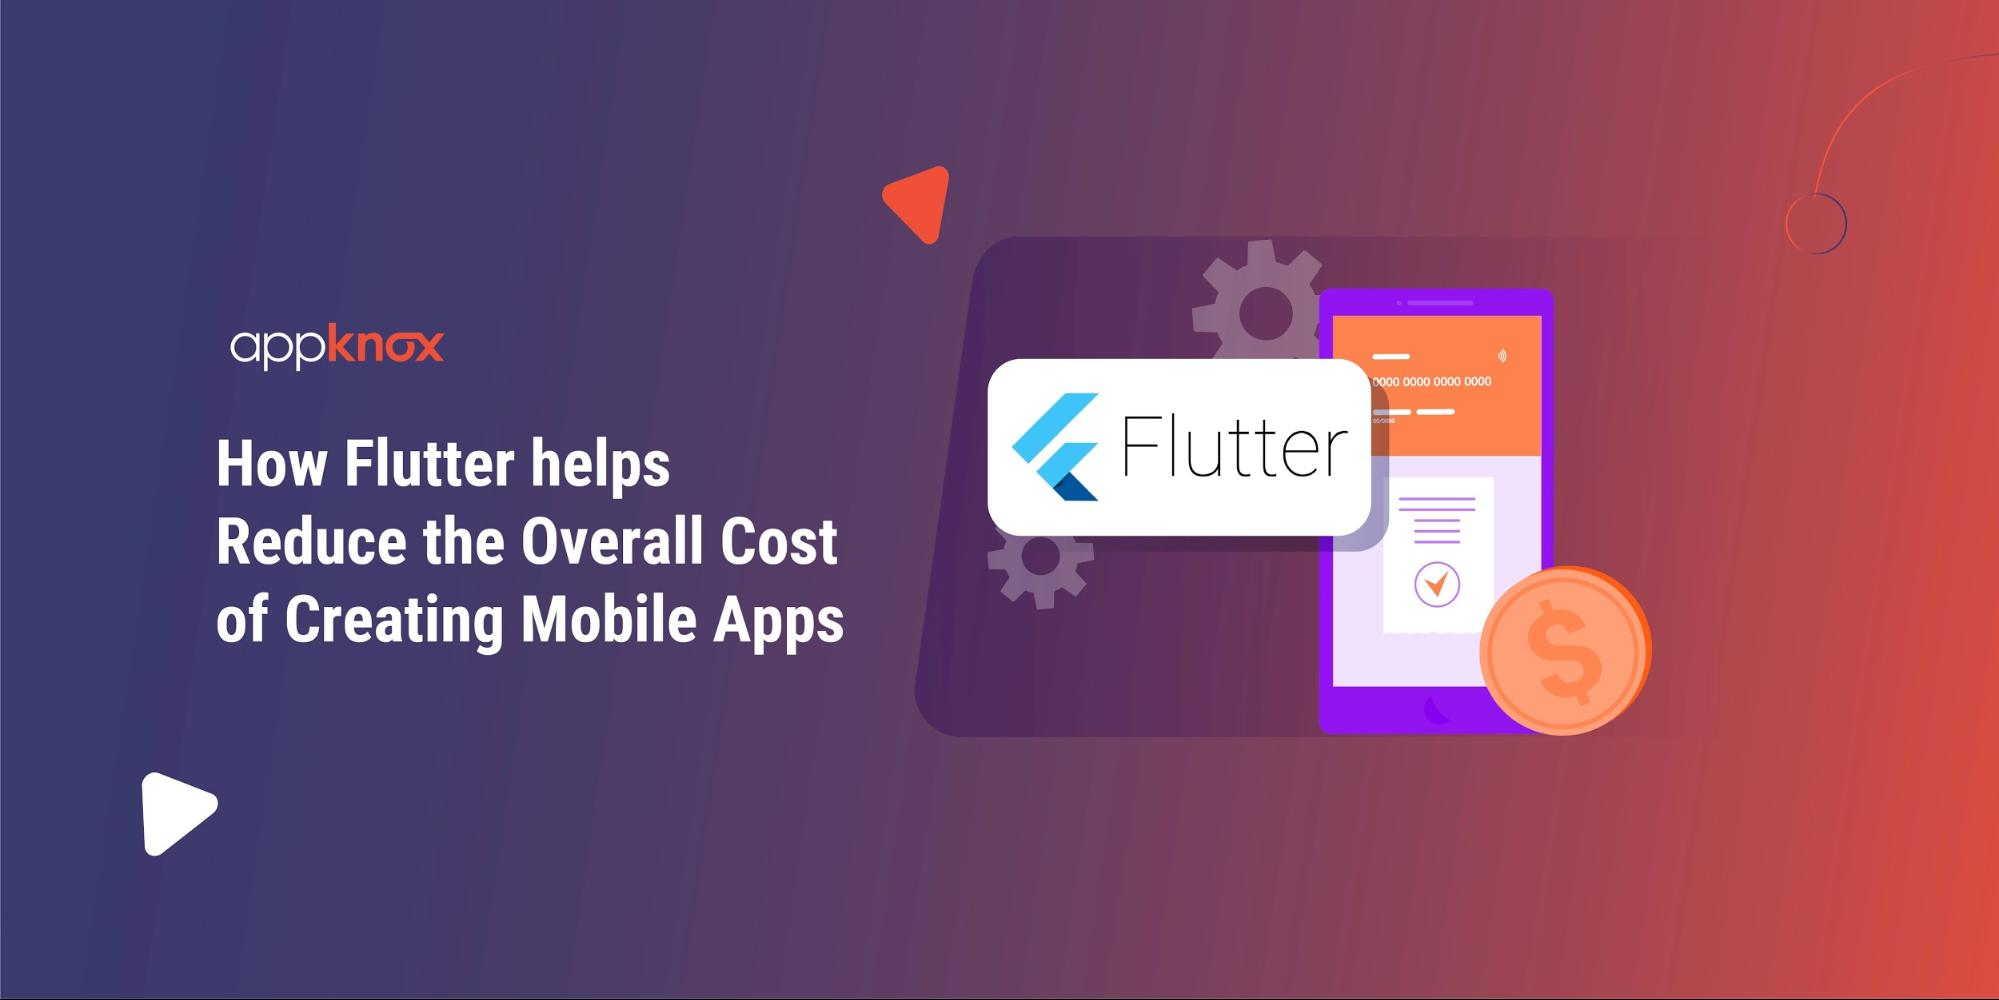 How will Flutter help reduce the overall cost of creating Mobile Apps